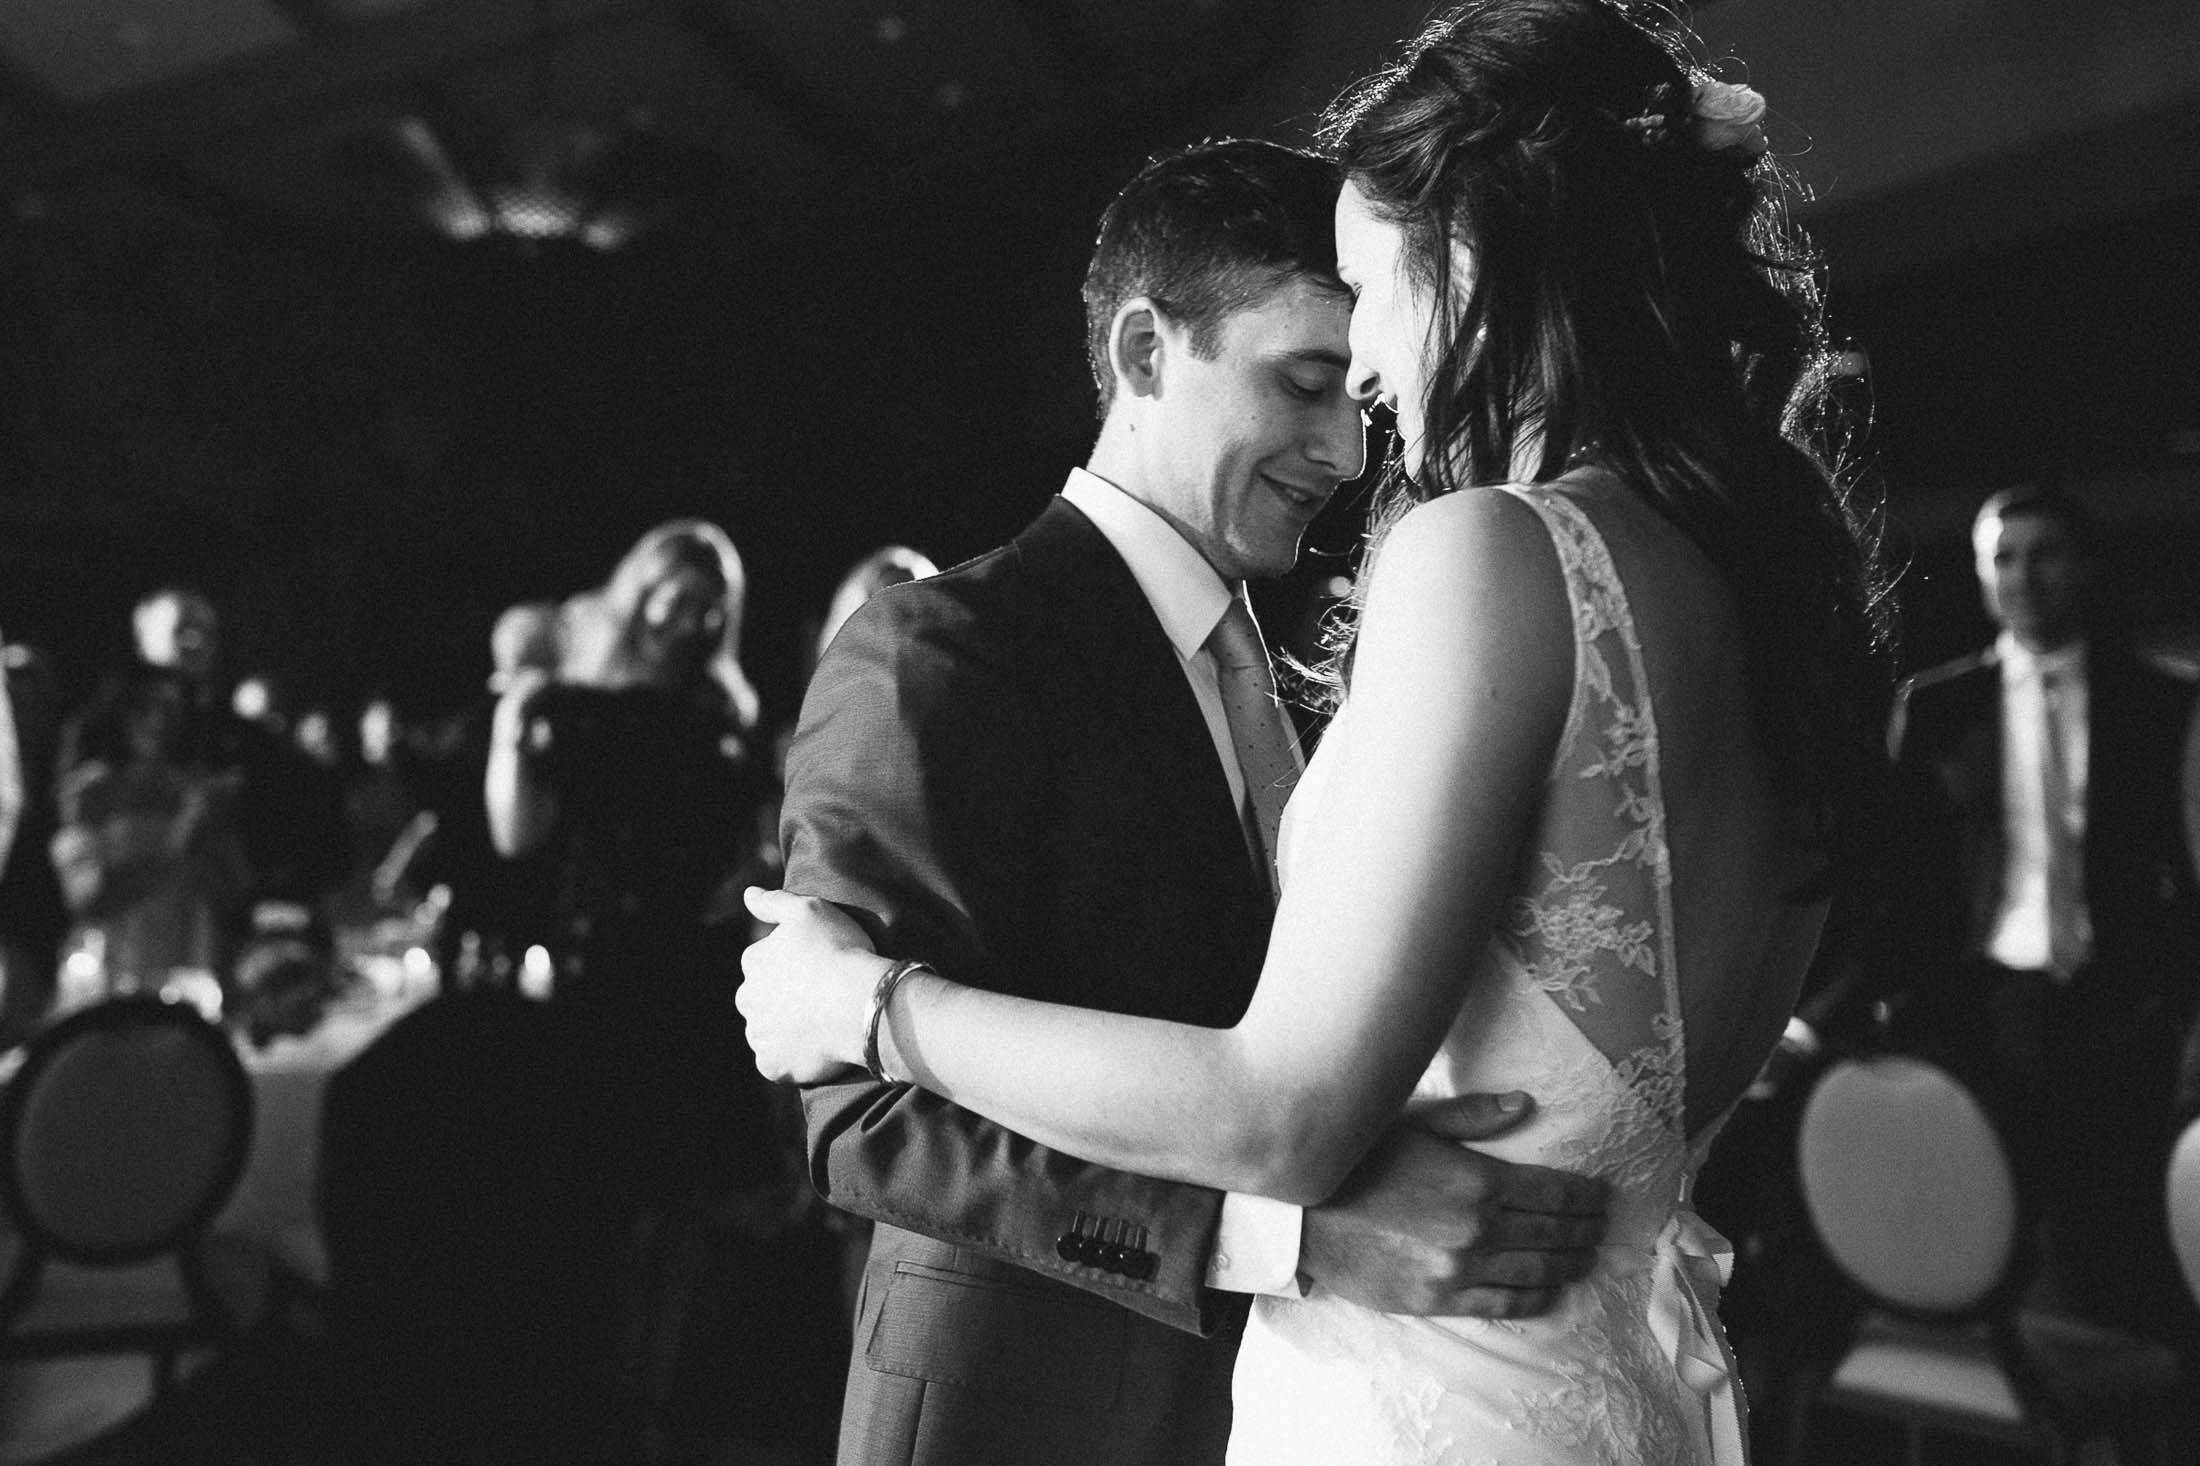 Black and white photo of bride and groom dancing together.